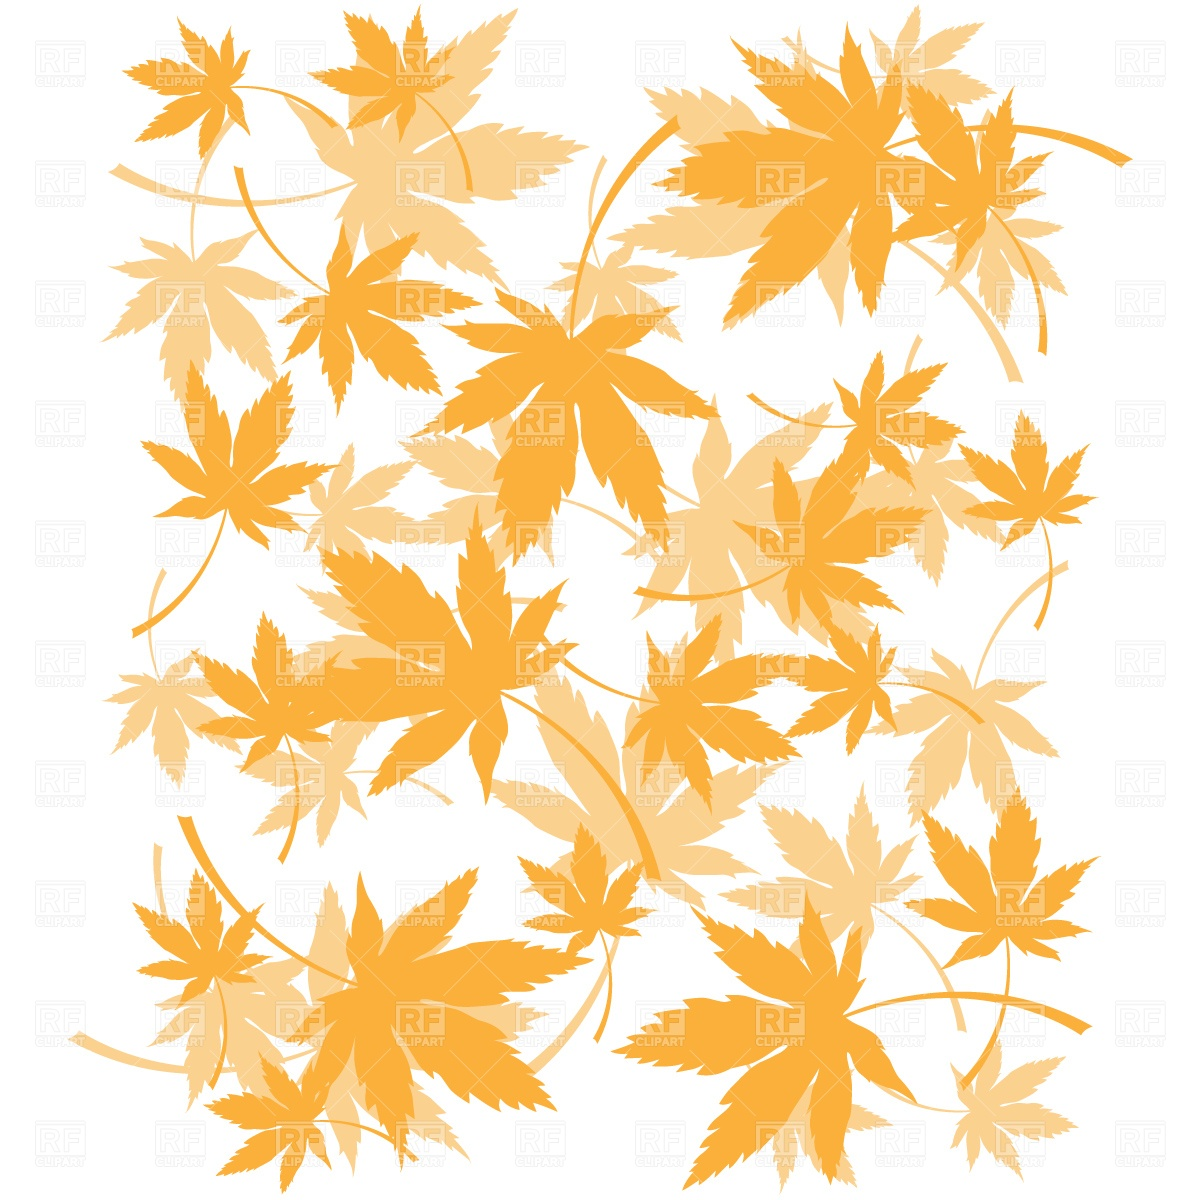 Leaves Transparent Background Clipart - Clipart Kid